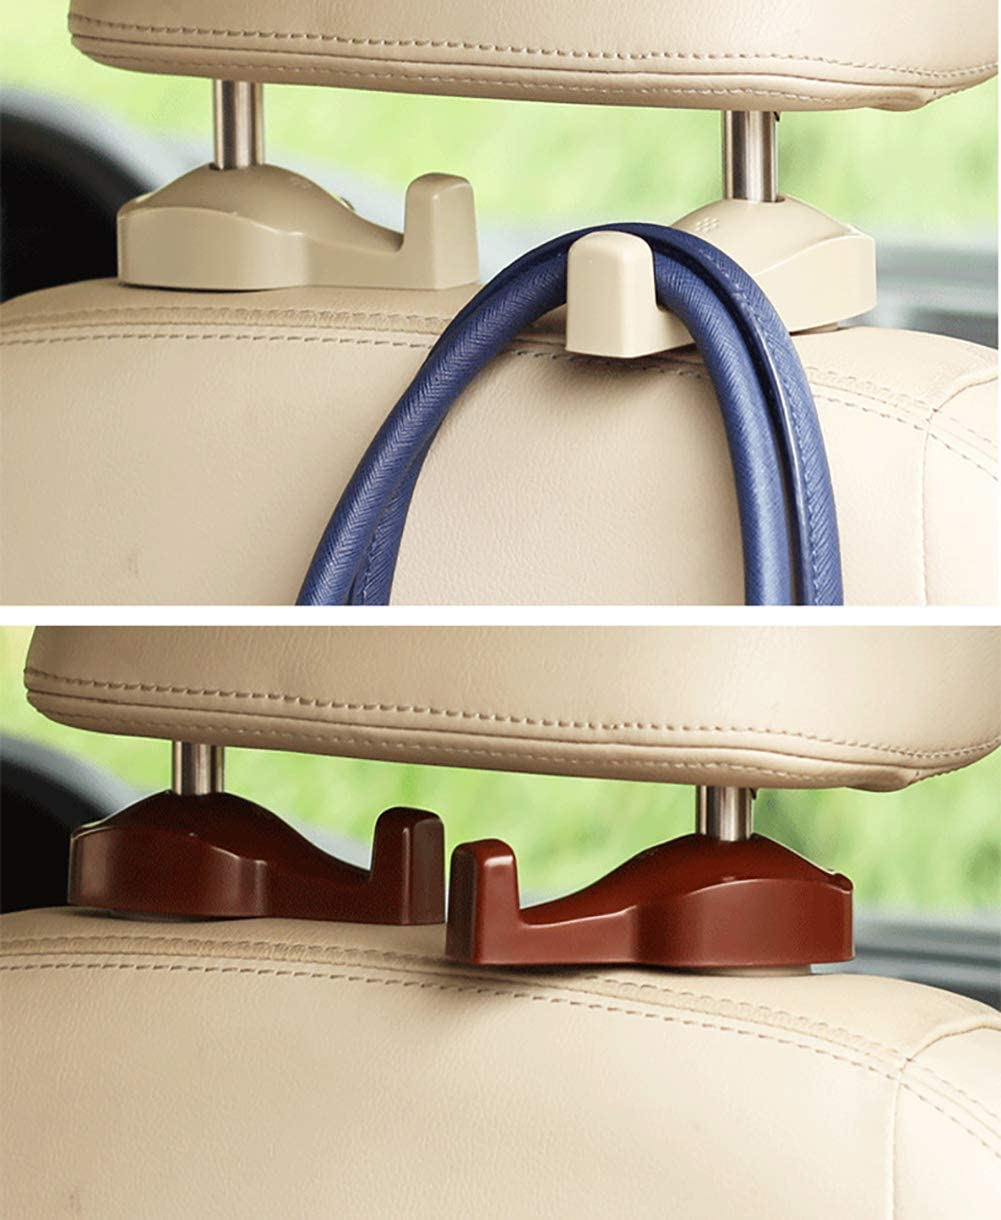 Emoly Upgraded Universal 4 Pack Car Seat Headrest Hooks Strong and Durable Backseat Headrest Hanger Storage for Handbags Beige Purses Coats and Grocery Bags